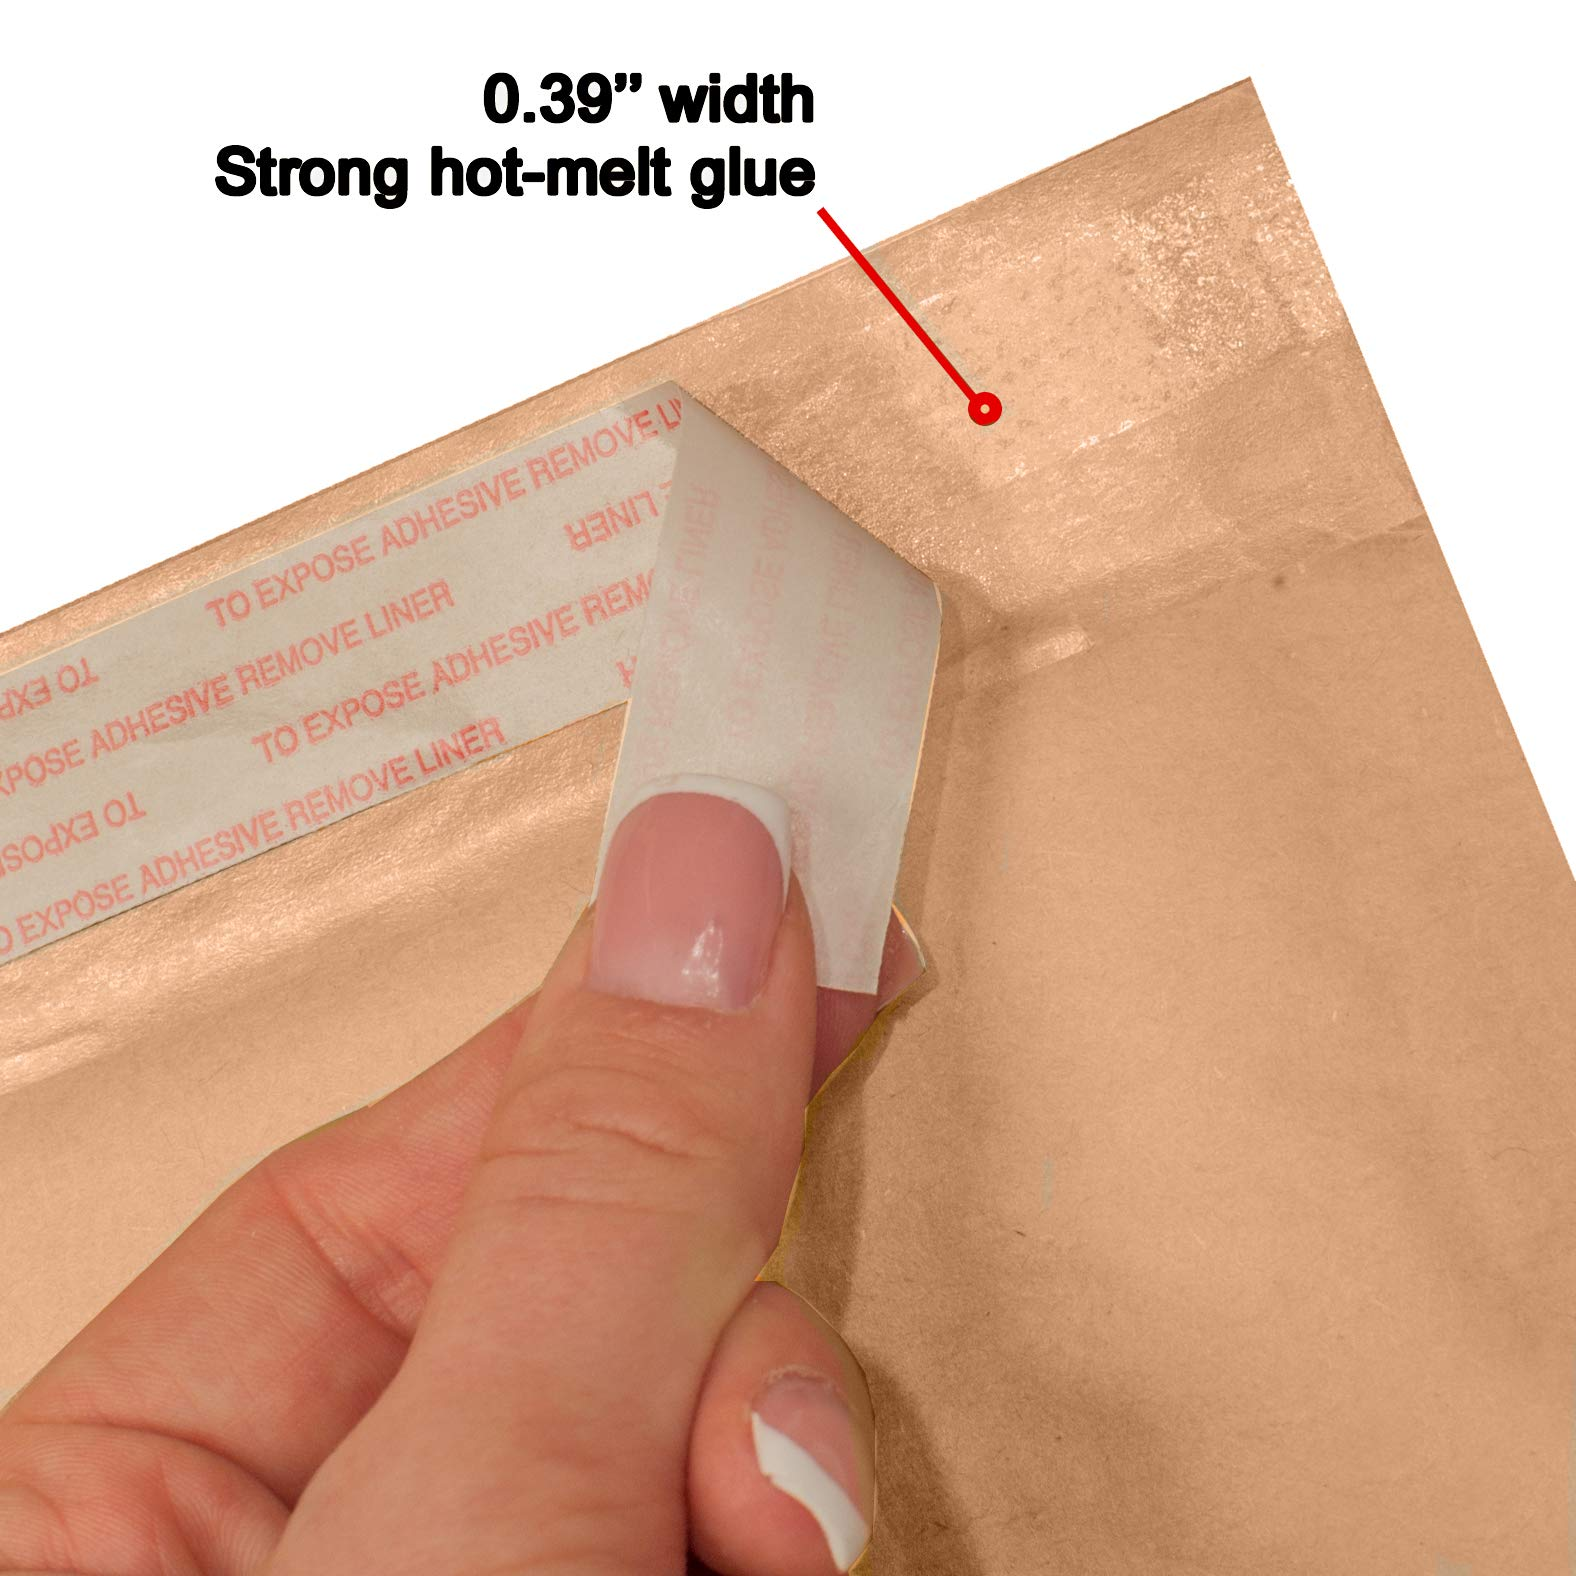 AMIFF Natural Kraft bubble mailers 14 x 20 Brown Padded envelopes 14 x 20 by Amiff. Pack of 10 Kraft Paper cushion envelopes. Exterior size 15 x 20 (15 x 20). Peel and Seal. Mailing, shipping. by Amiff (Image #8)